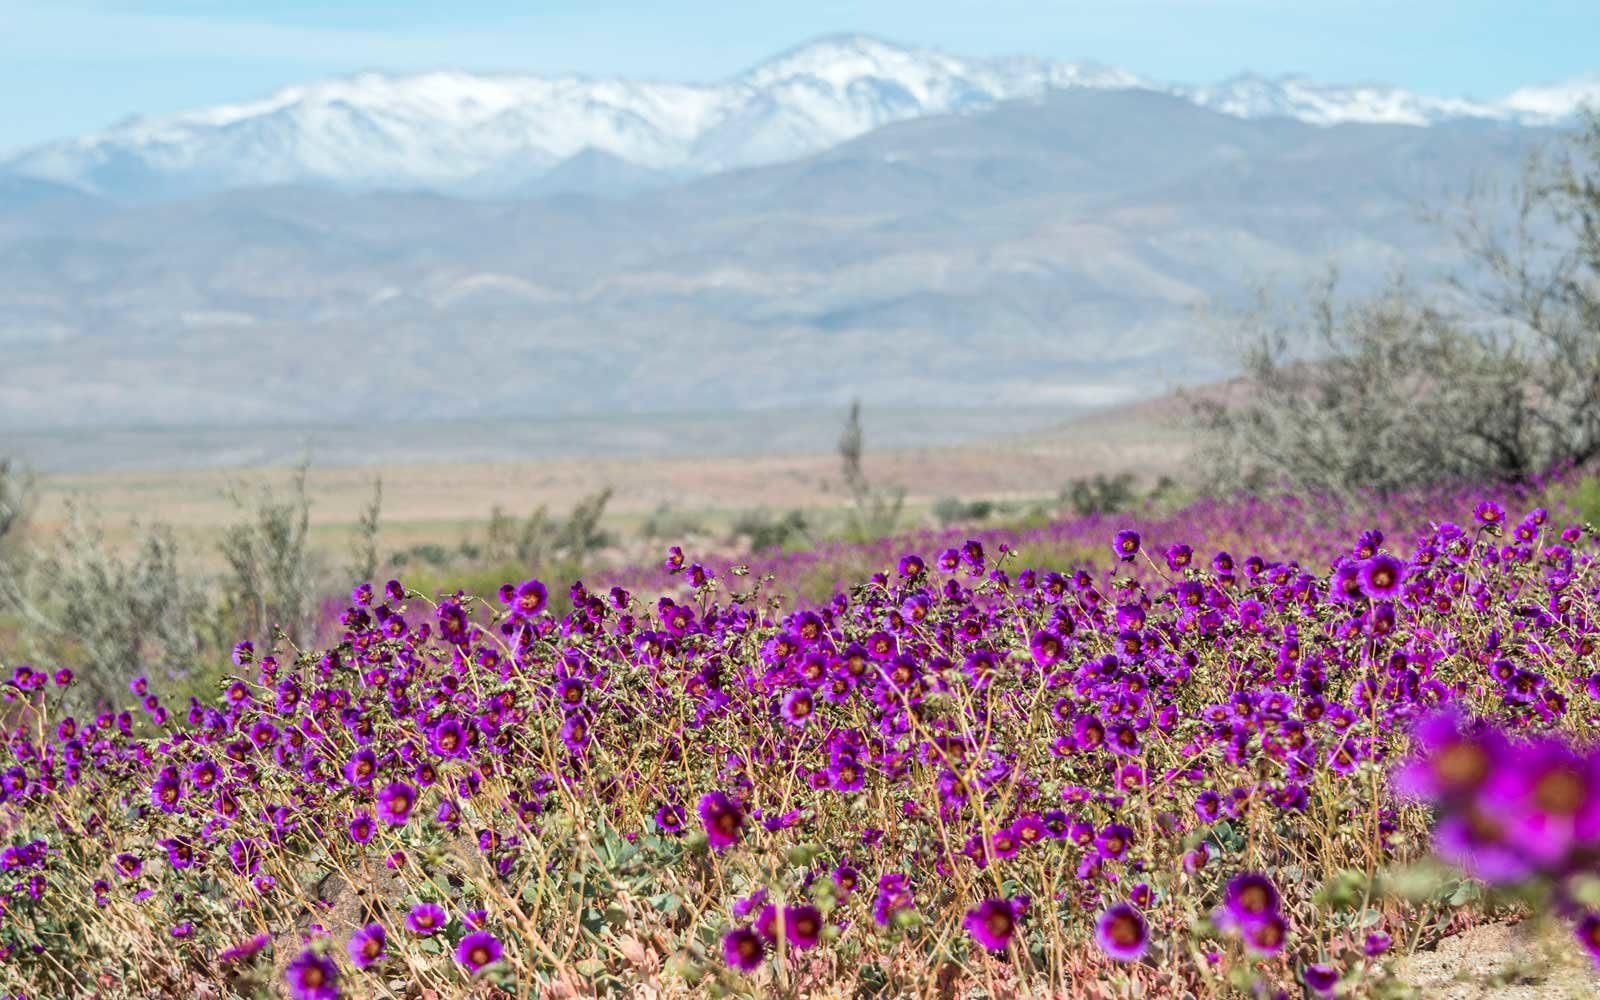 El Nino Brings Flowers to the Atacama Desert, Chile